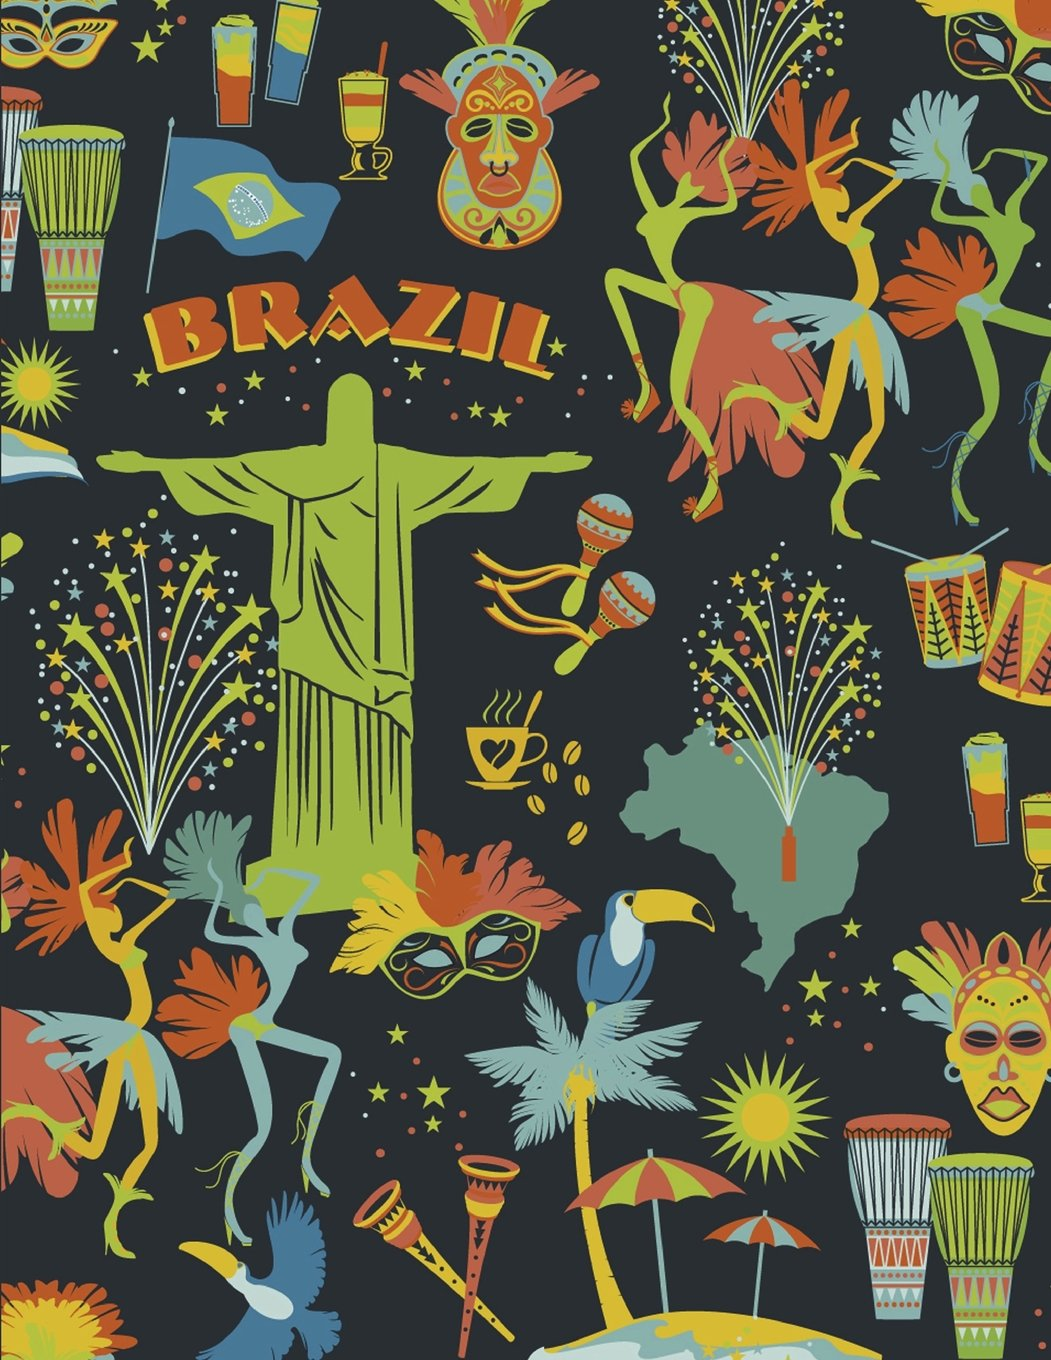 Download Brazil Notebook: Festival Travel Journal Notebook Lined Ruled Page Paper For Kids Teen Girl Boy Women Men Traveler Great For Writing Diary Note Pad ... Inches, 121 Lined Page, Paperback) (Volume 1) pdf